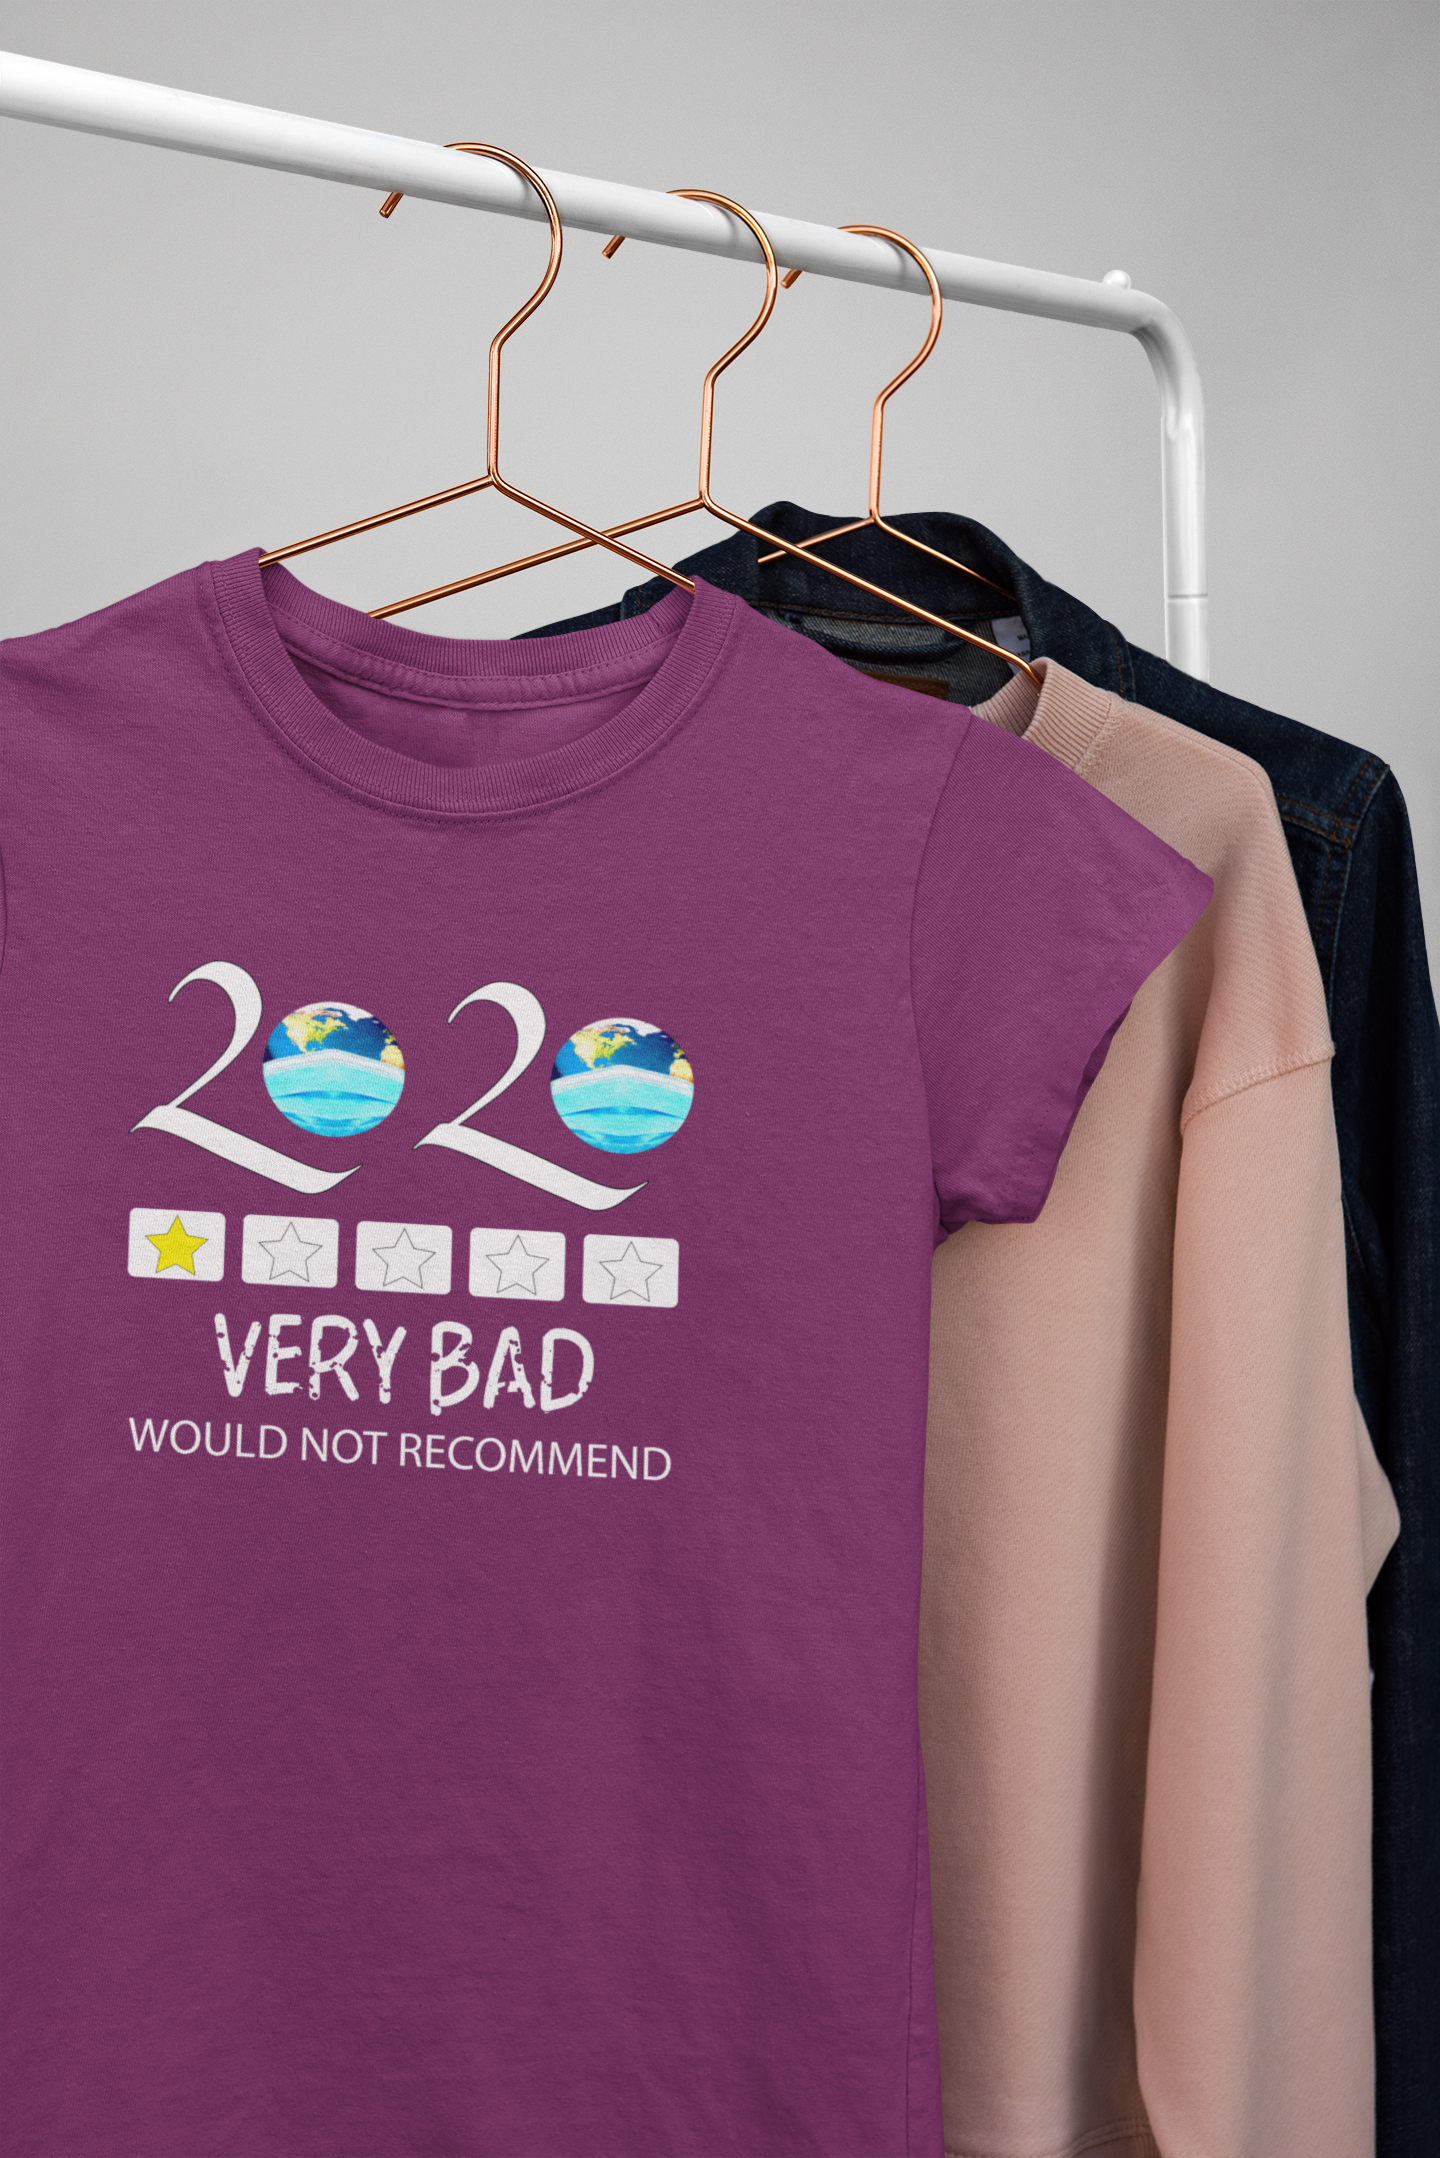 2020 Reviews Very Bad Would Not Recommend Funny Review Gift For Men And Women Women T Shirts For Women Mens Gifts